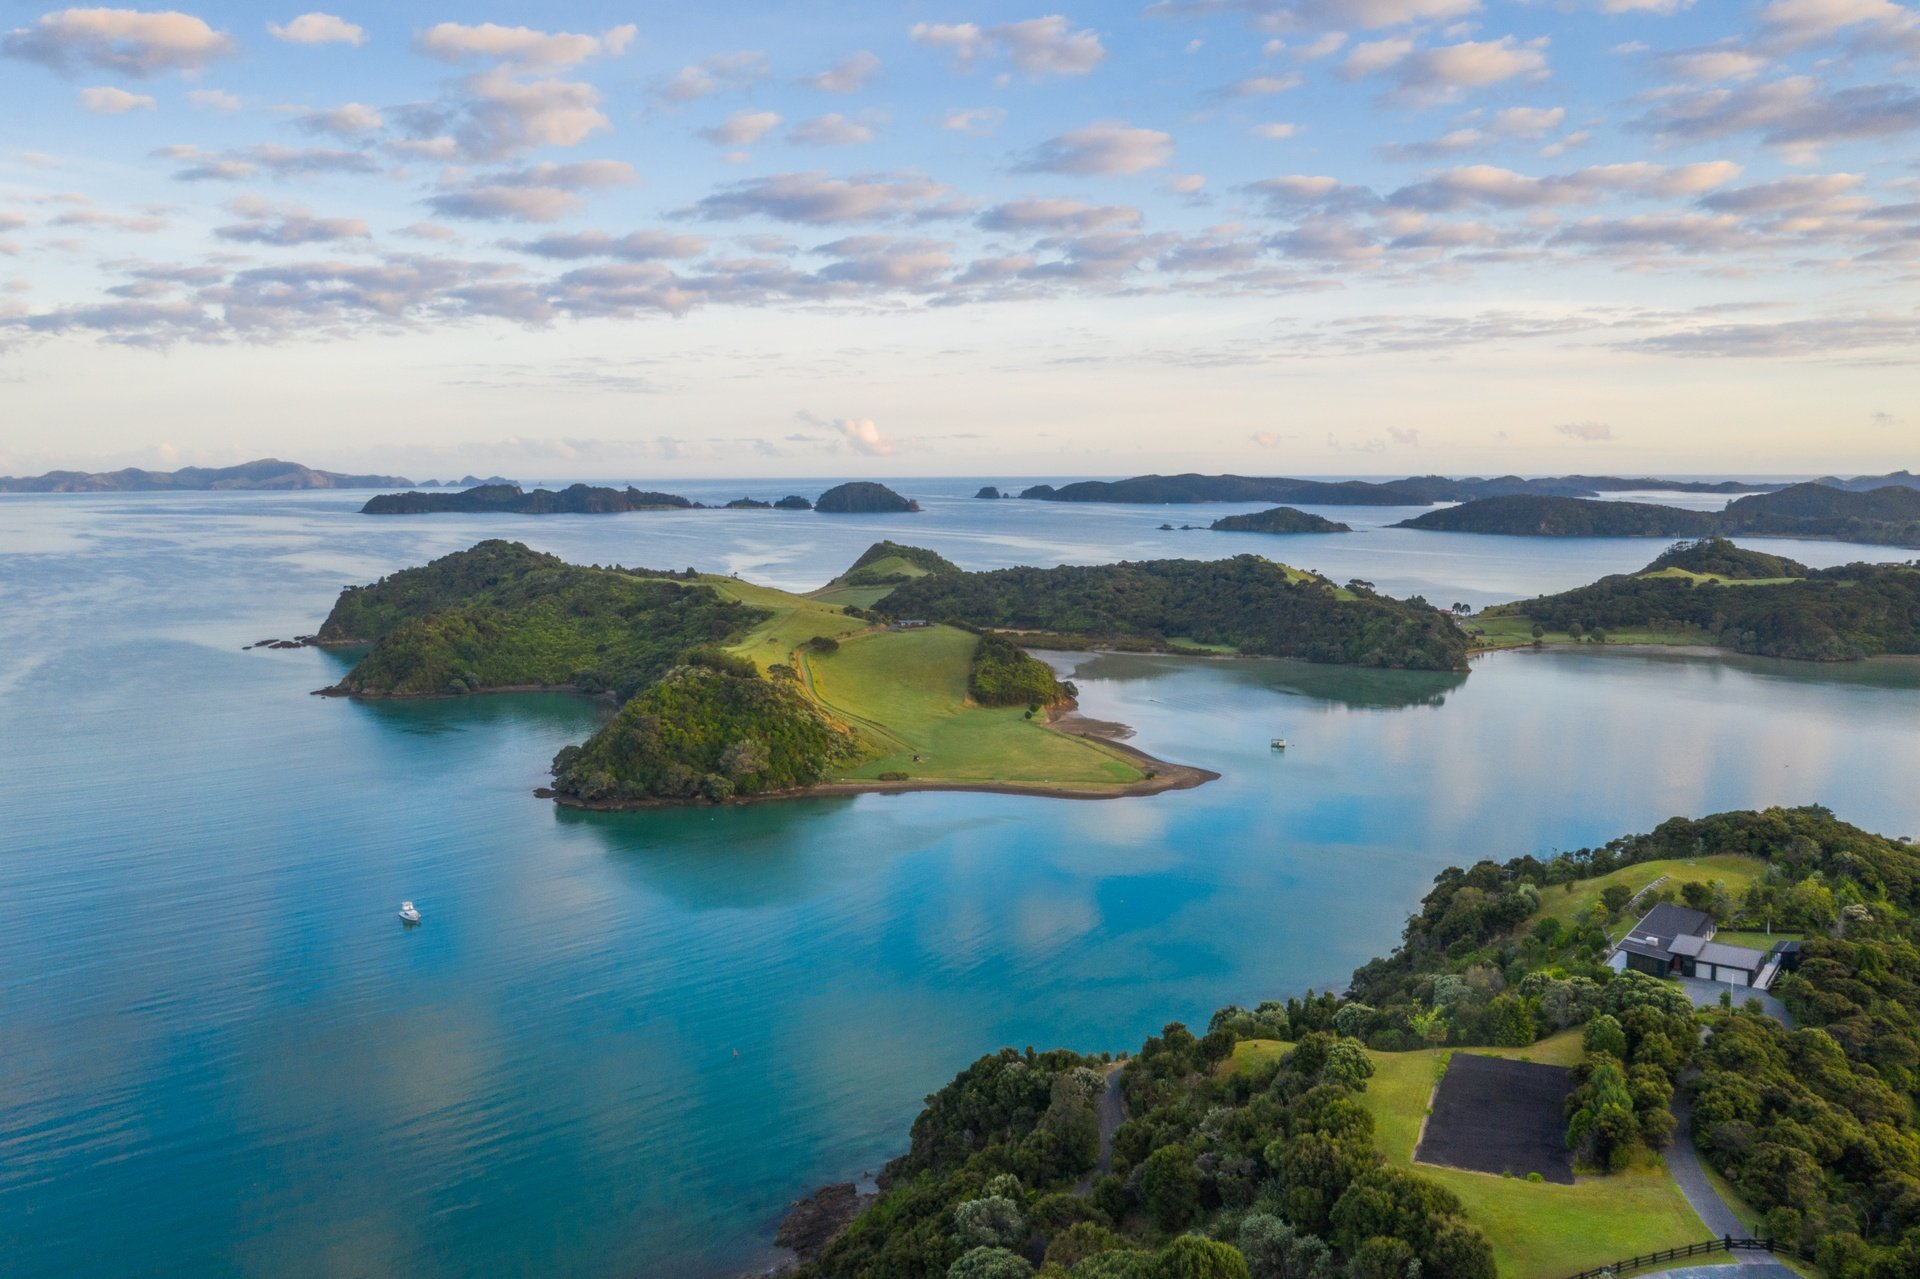 Paroa Bay Bay of Islands New Zealand